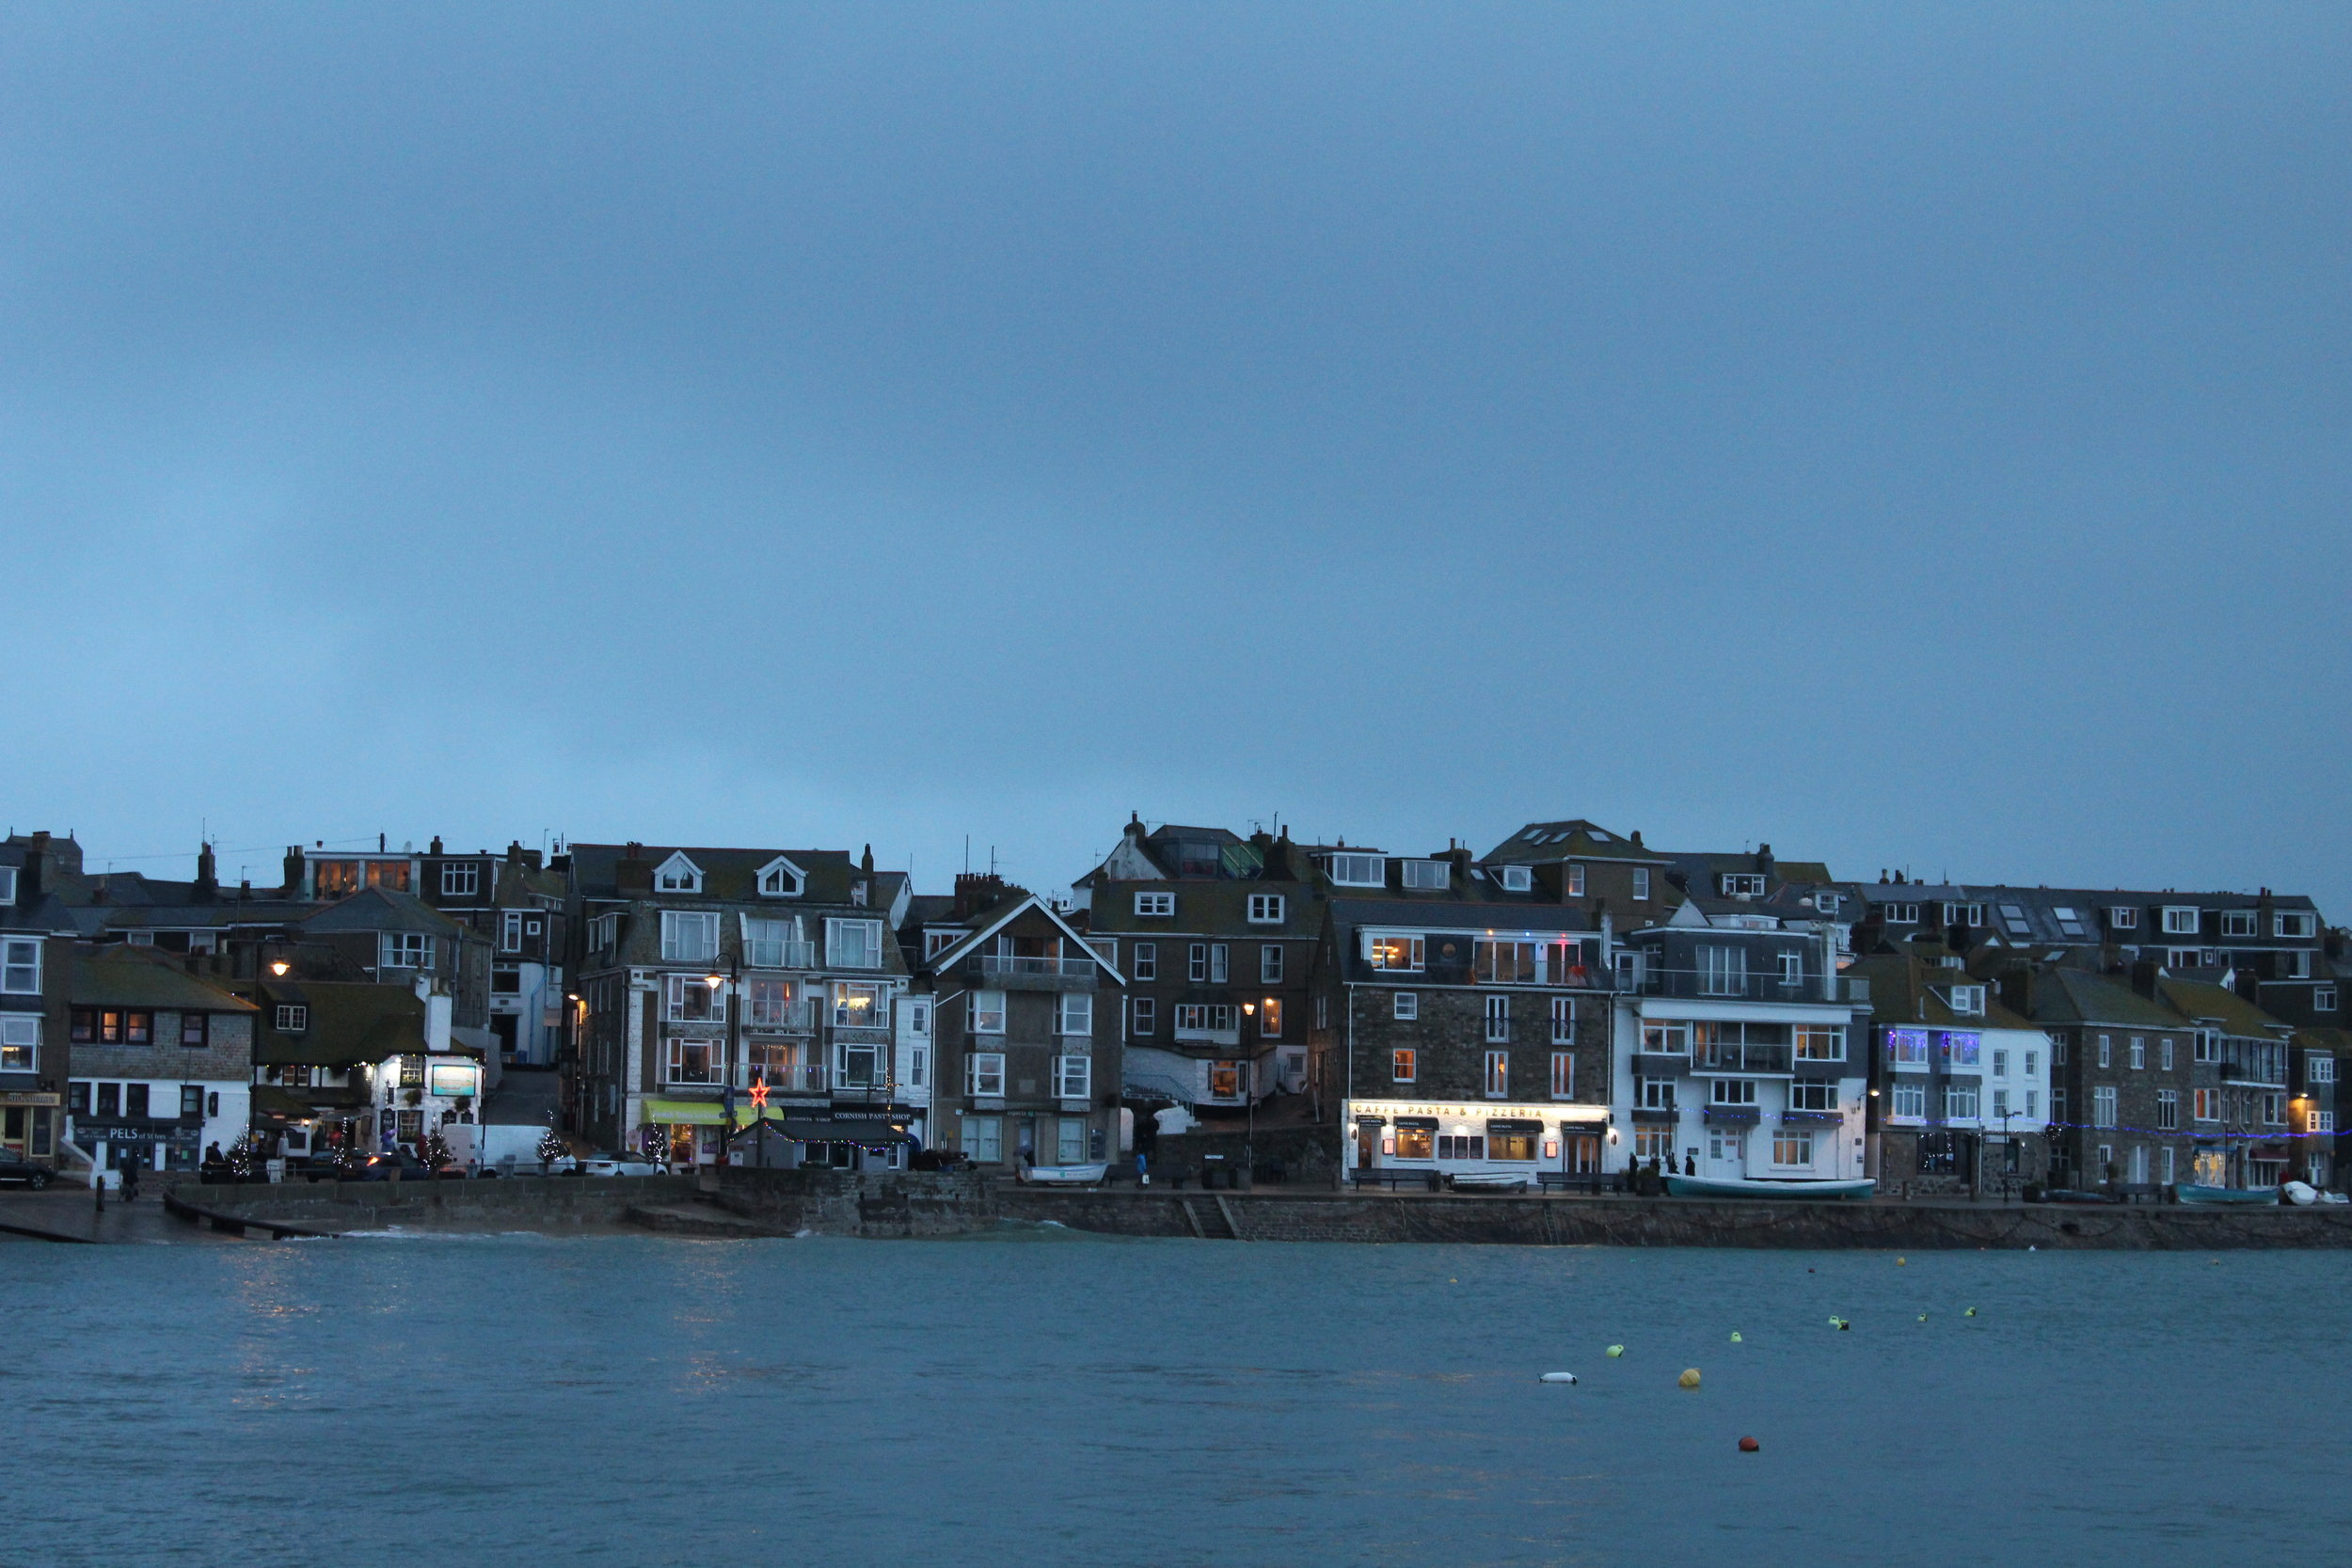 The harbour at dusk. The blues intensify as the sun goes down.